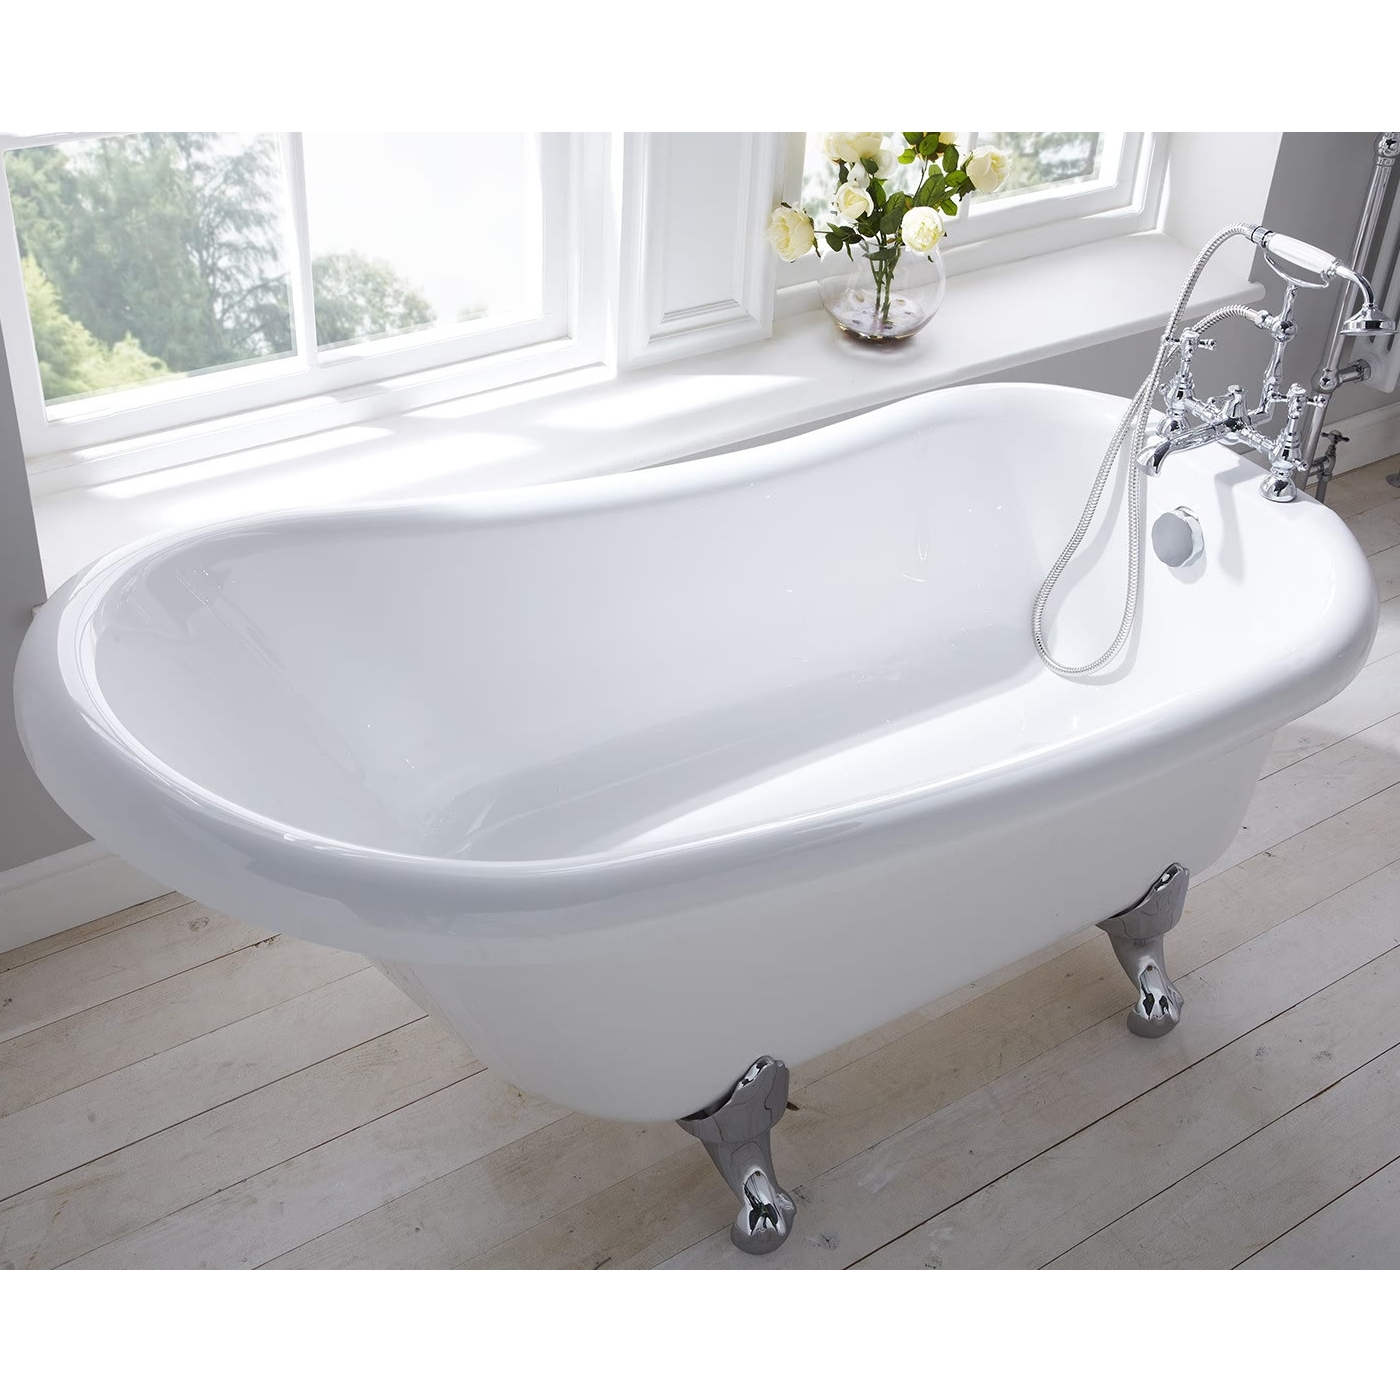 Verona Camden Freestanding Roll Top Slipper Bath 1500mm x 750mm - Excluding Feet